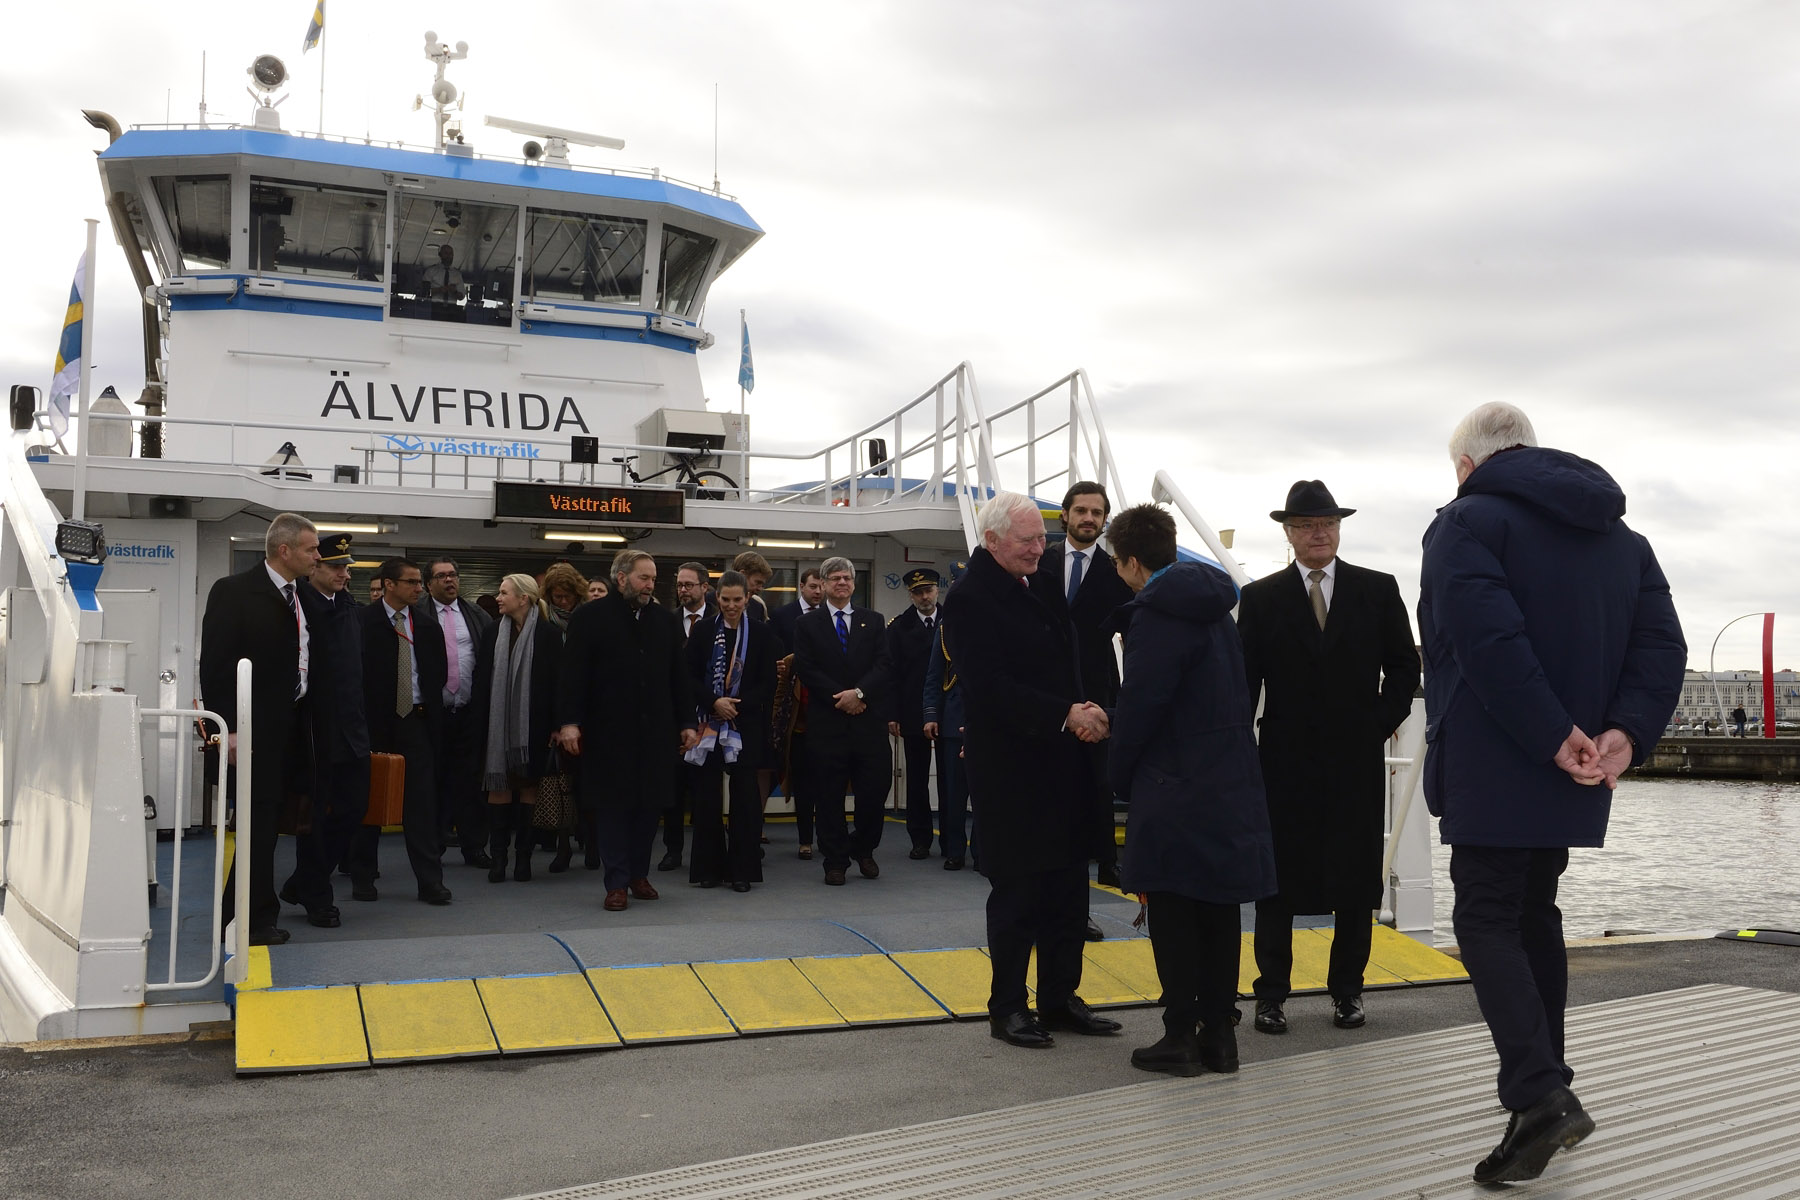 His Excellency and Canadian delegates took the ferry to the Lindholmen Science Park.